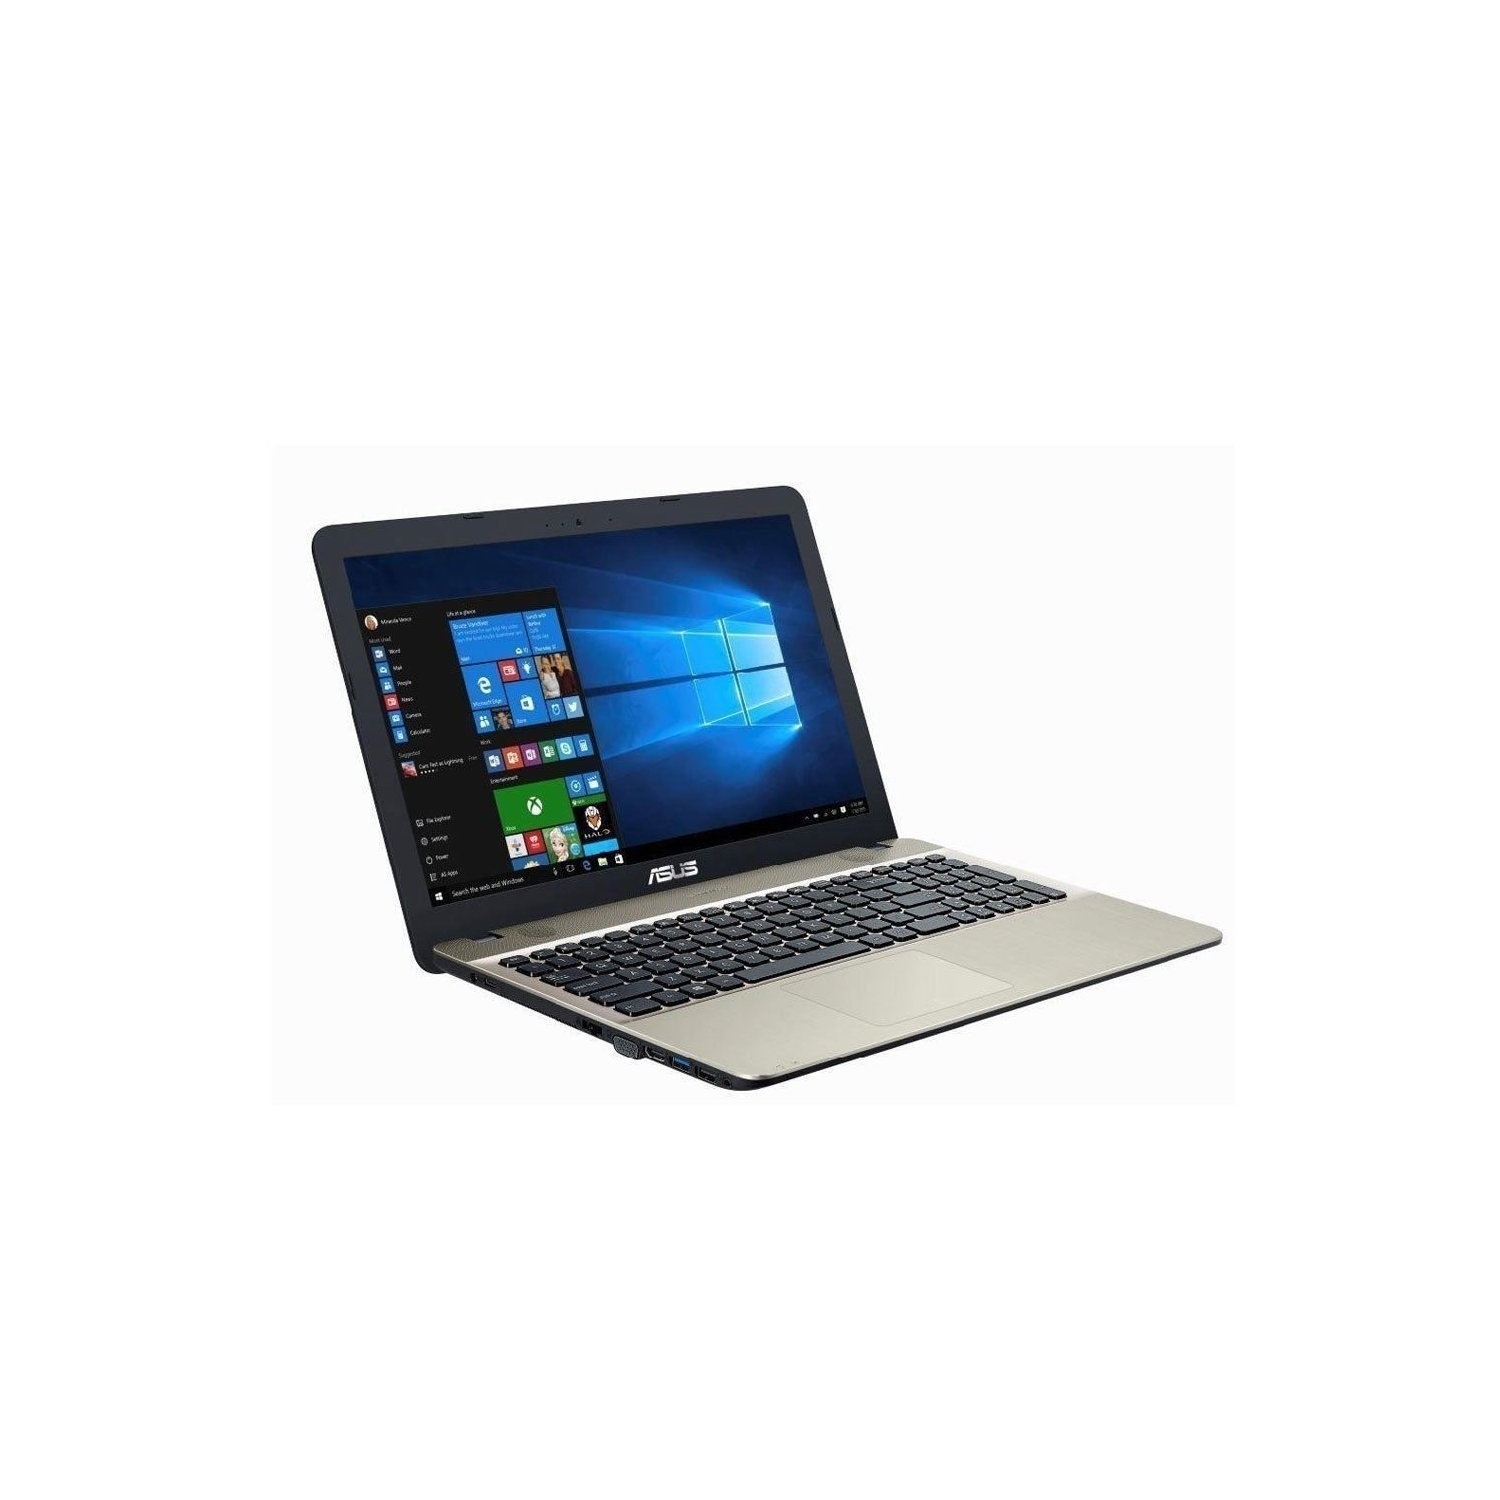 GRADE A3 - Asus VivoBook Core i7-7500U 8GB 1TB DVD-RW 15 6 Inch Windows 10  Laptop